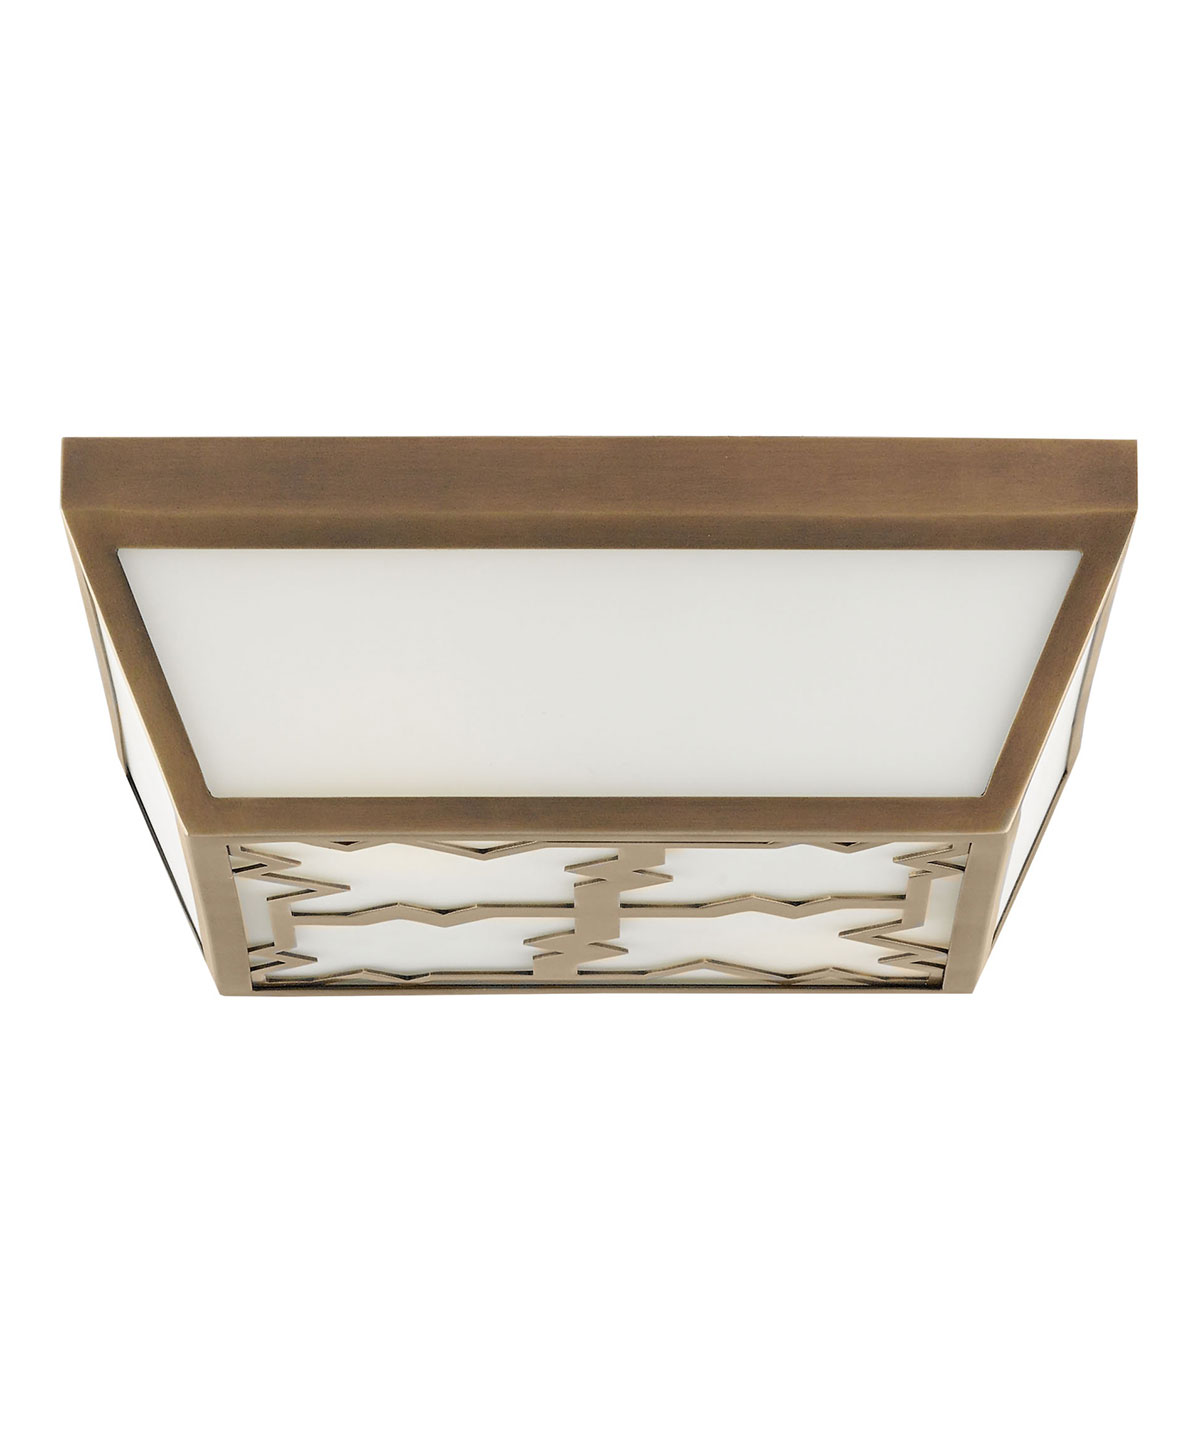 Hermes Flush Mount